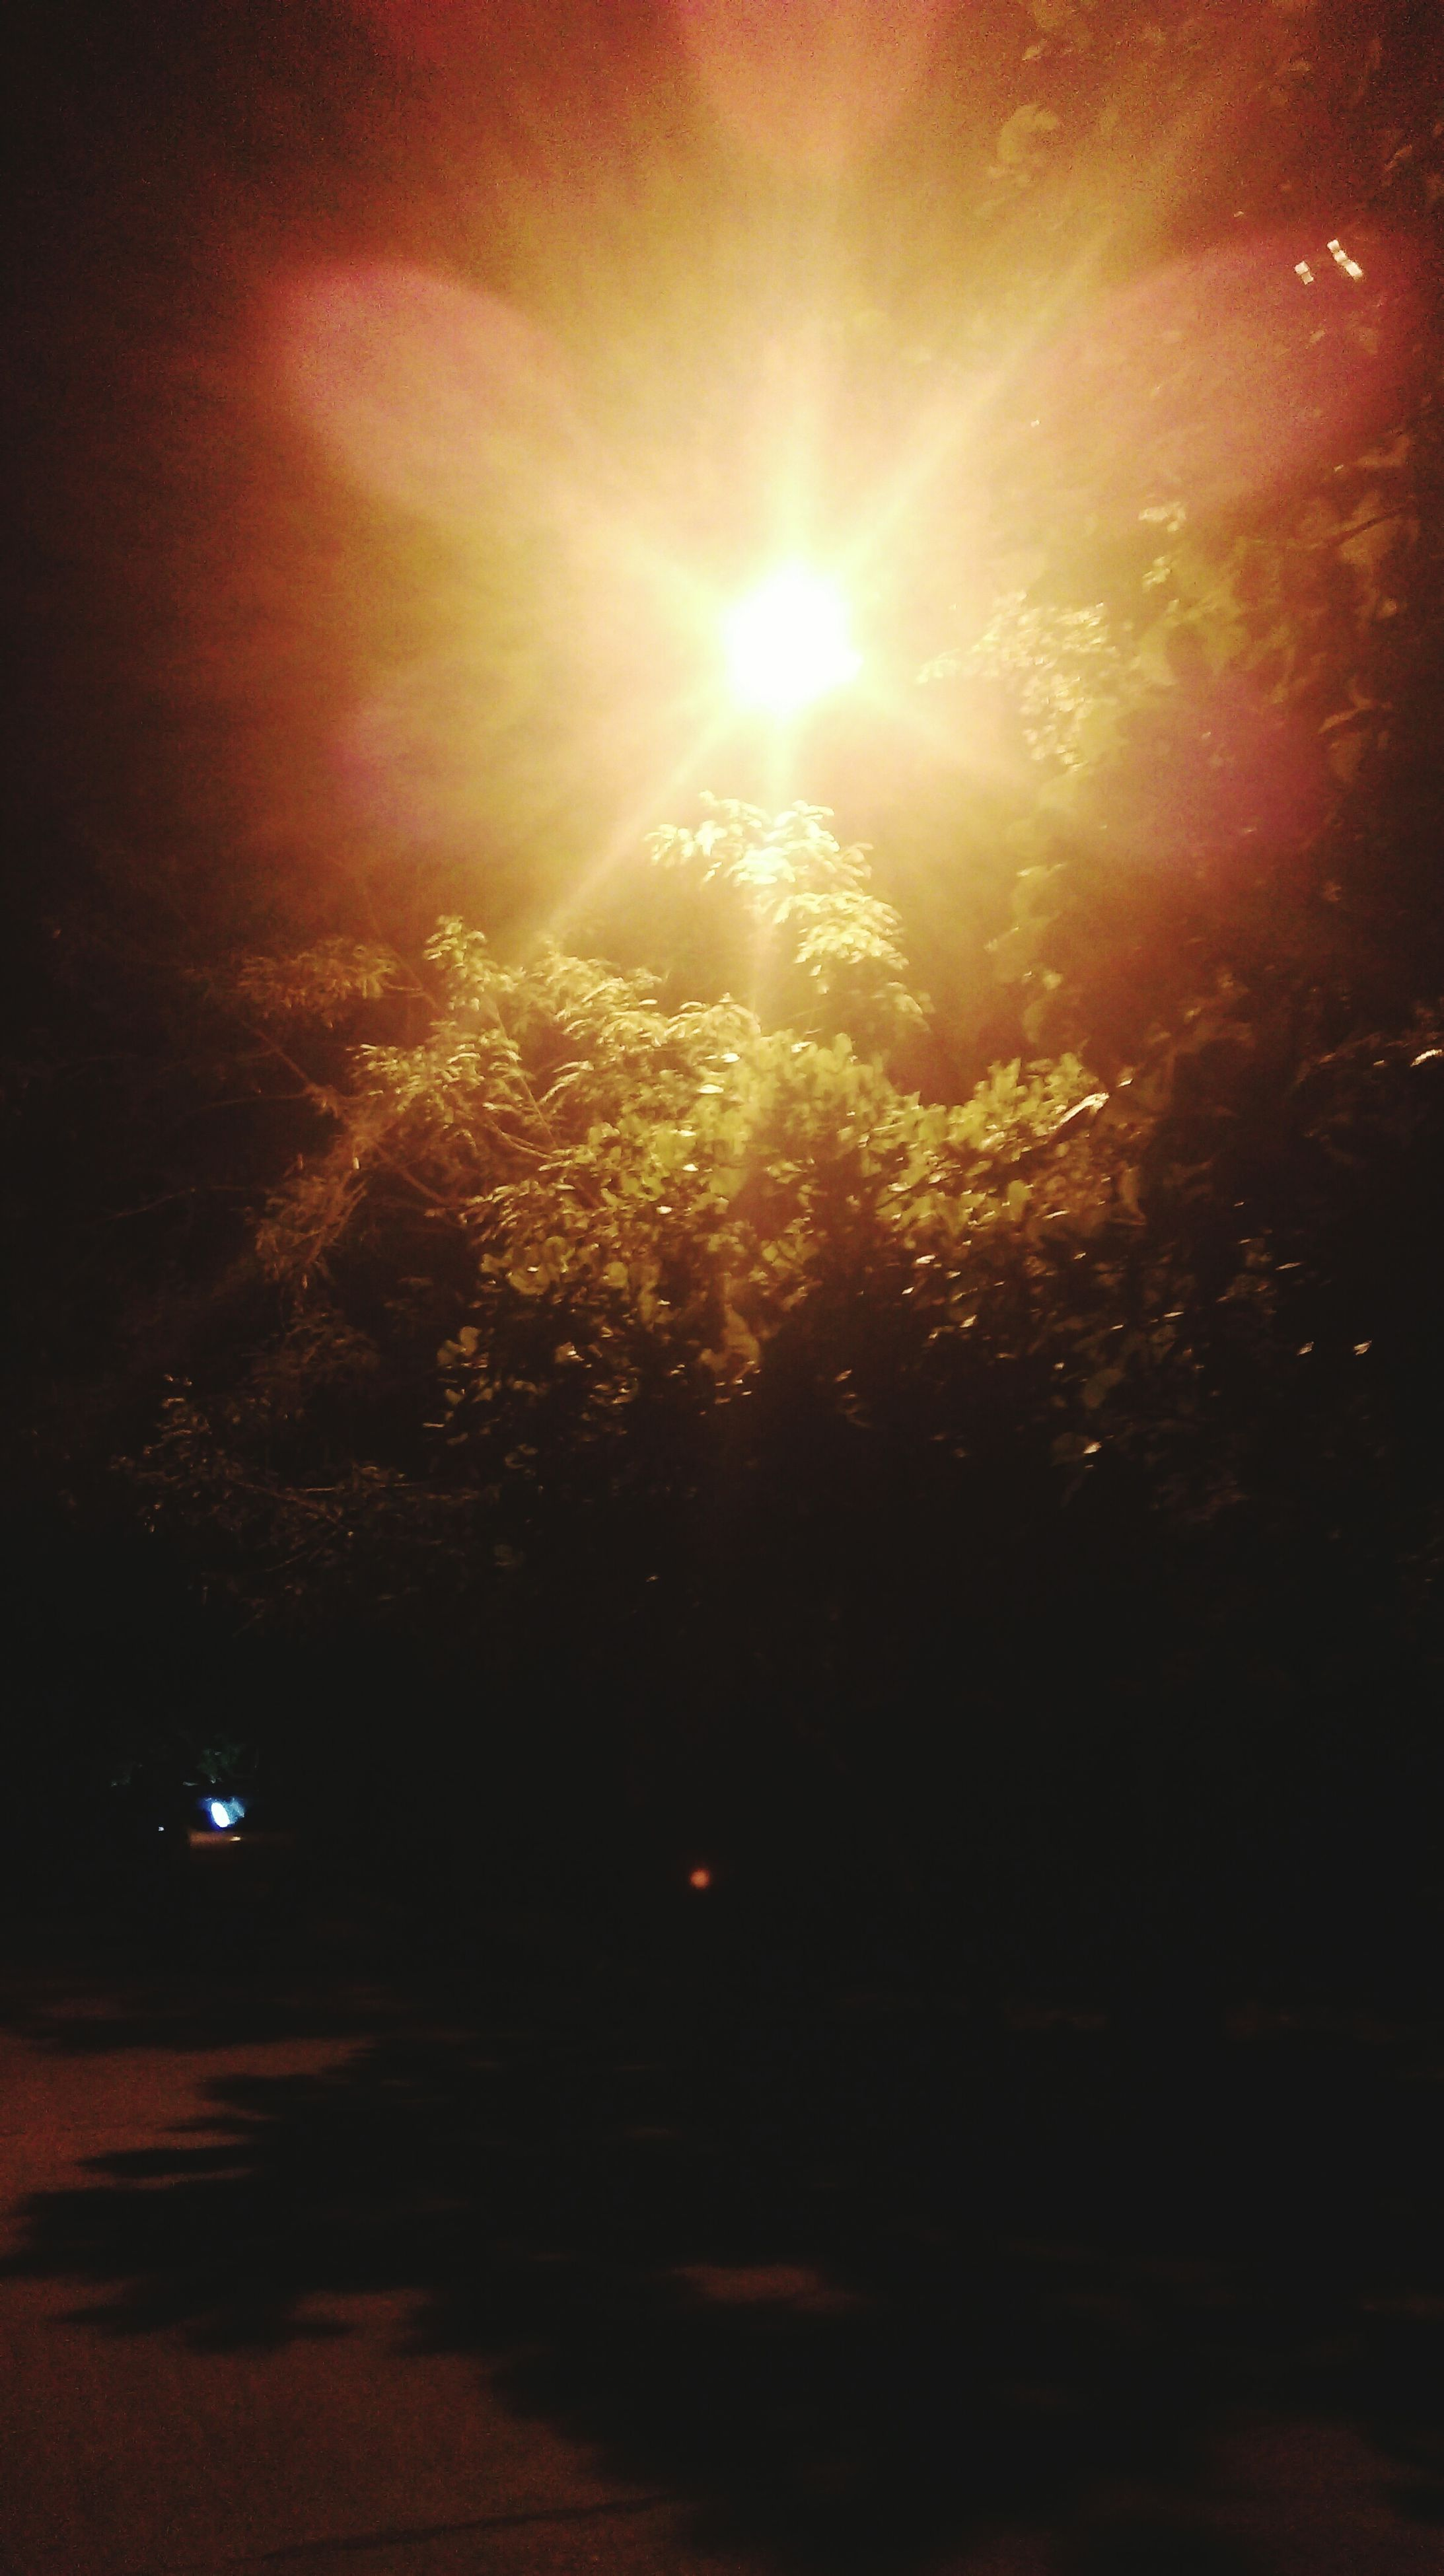 sun, lens flare, tree, sunlight, sunbeam, night, beauty in nature, tranquility, nature, low angle view, sky, illuminated, growth, glowing, scenics, bright, tranquil scene, outdoors, no people, branch